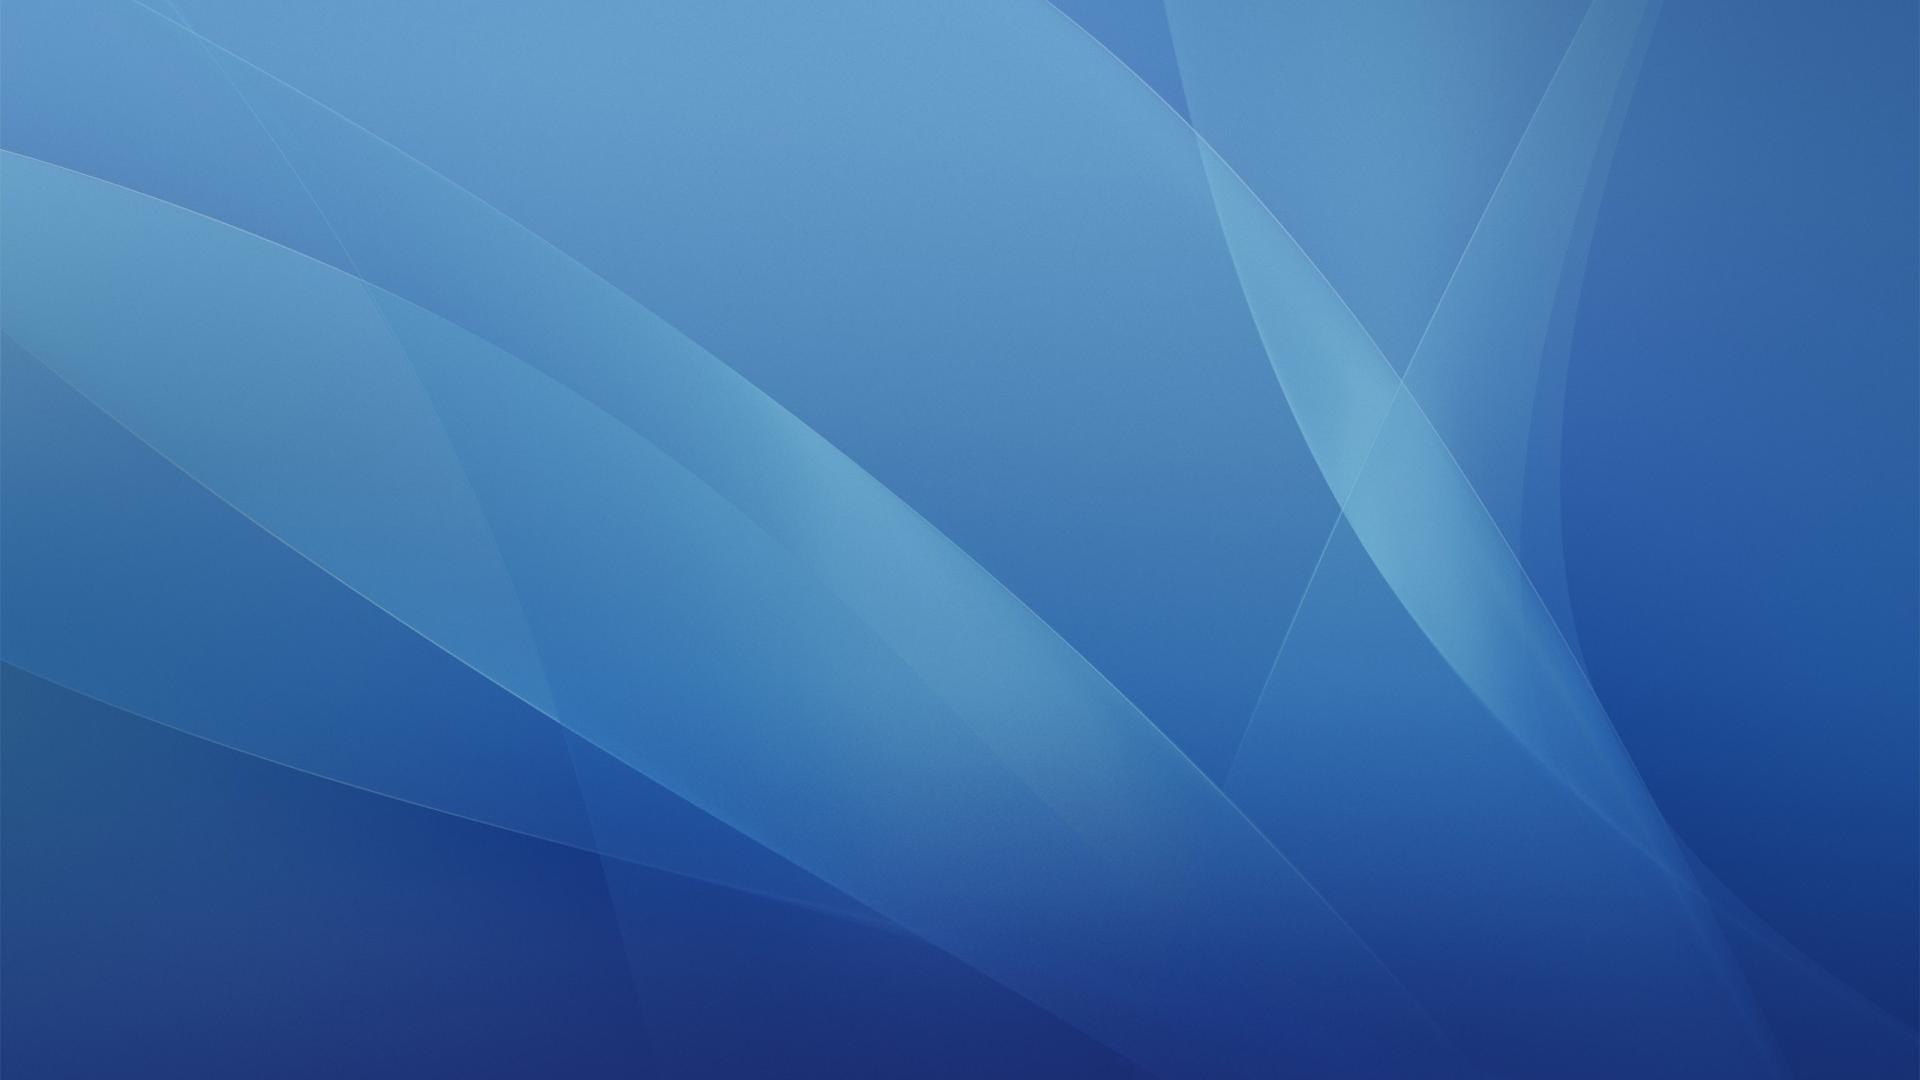 abstract Blue texture wallpaper background